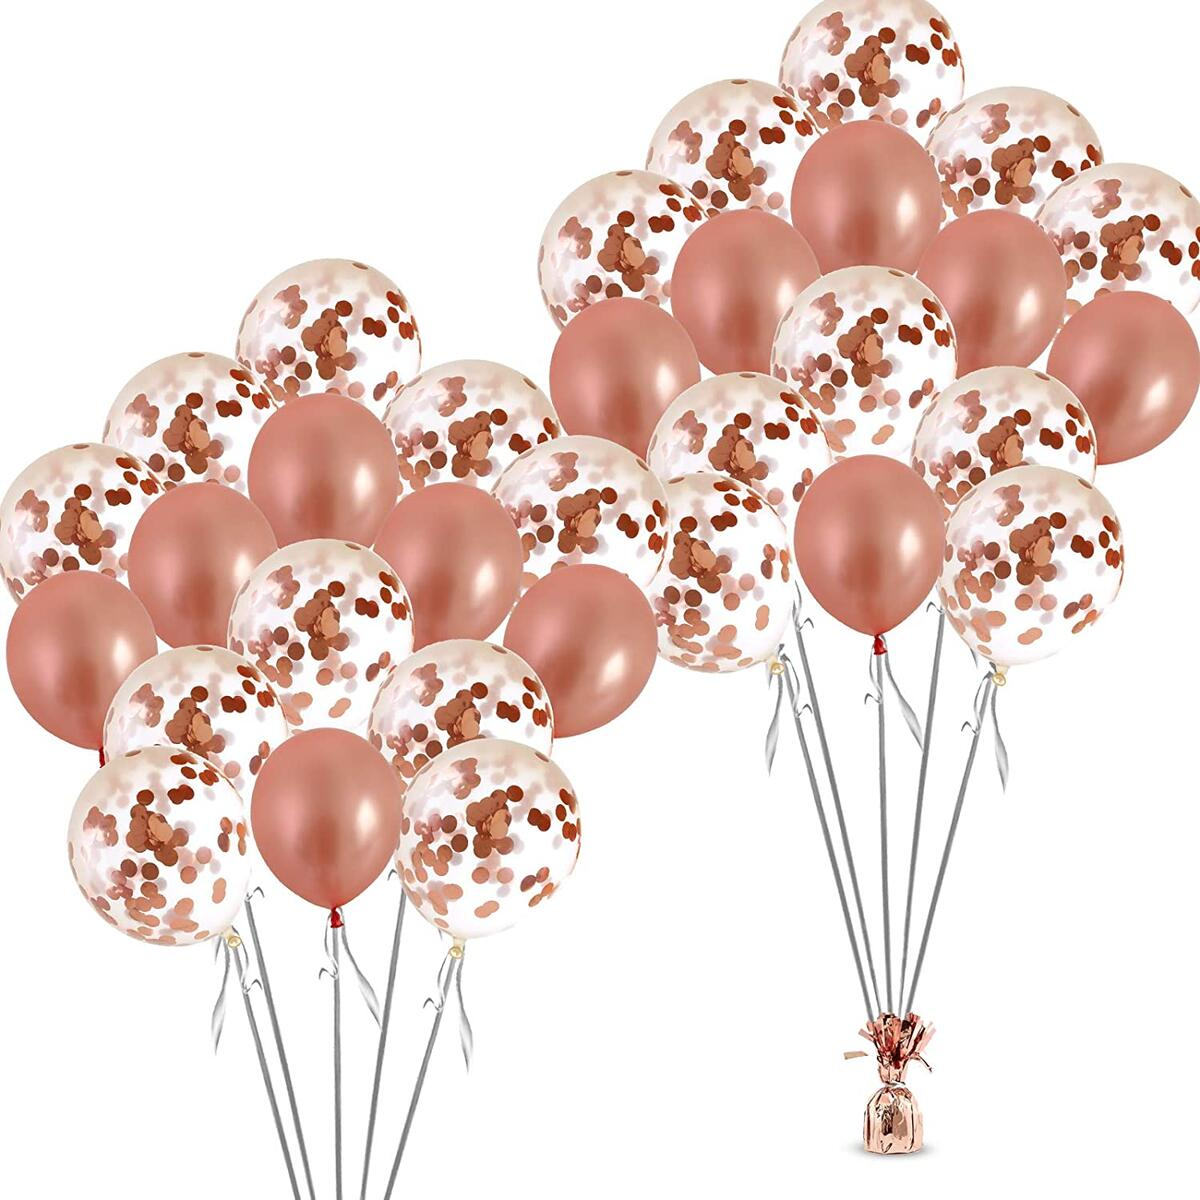 Rose Gold Confetti Balloons Set- 32 pcs Bachelorette Party Decorations for Bridal Showers, Wedding, Engagement Decor & Birthday Parties - Premium Large 18